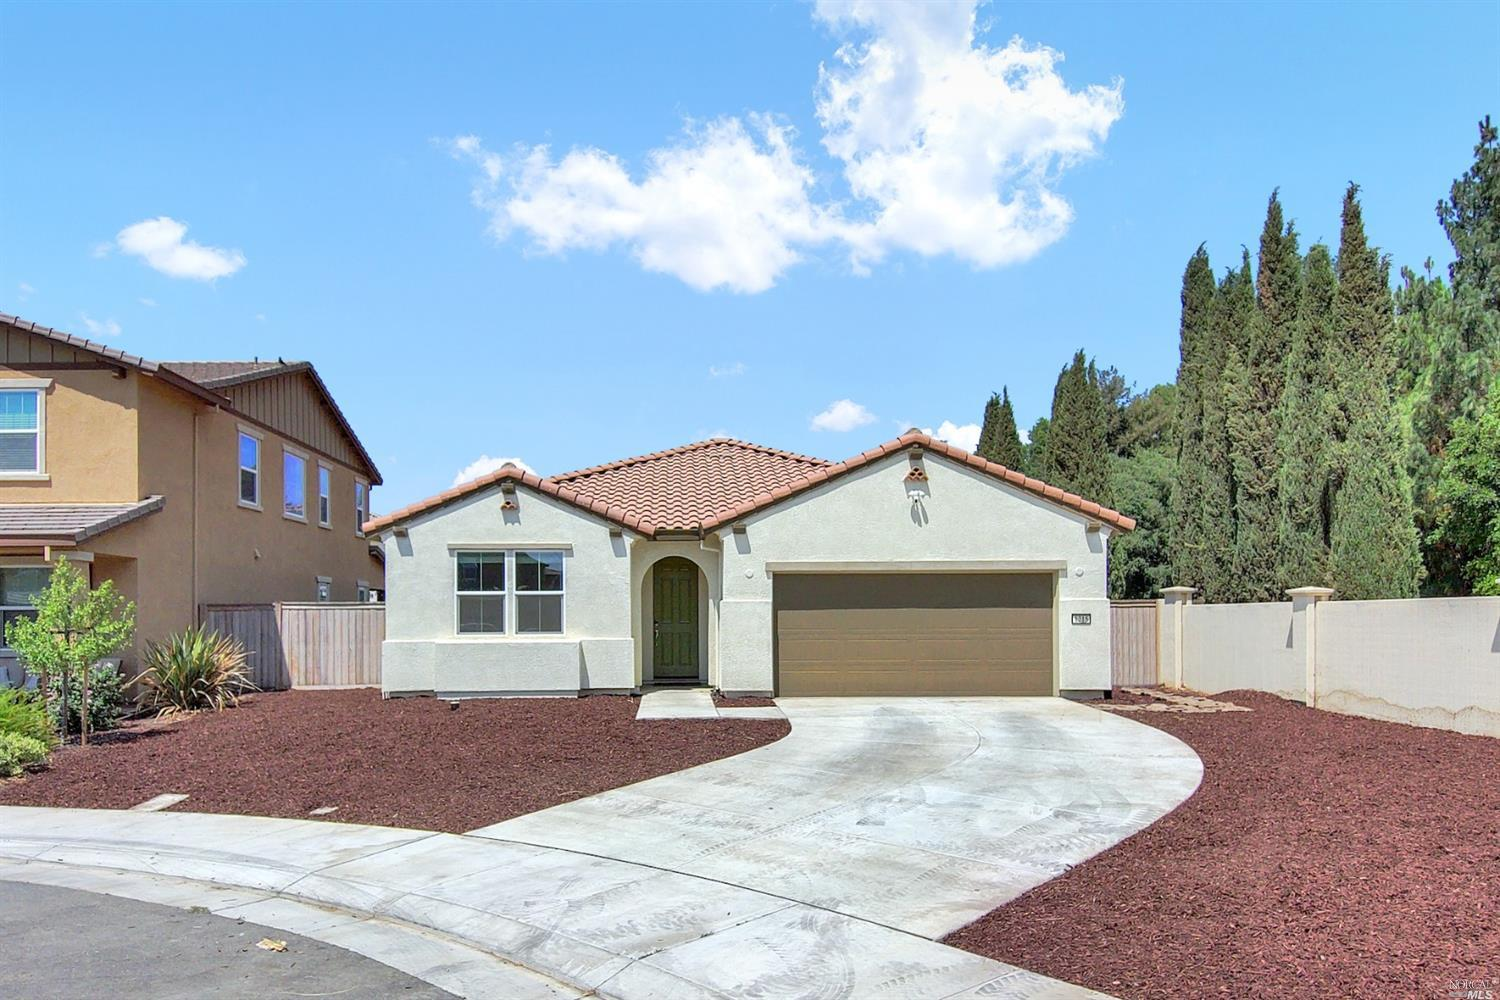 Only a few years new! This beautiful Valley Glen single story home has four bedrooms and three full